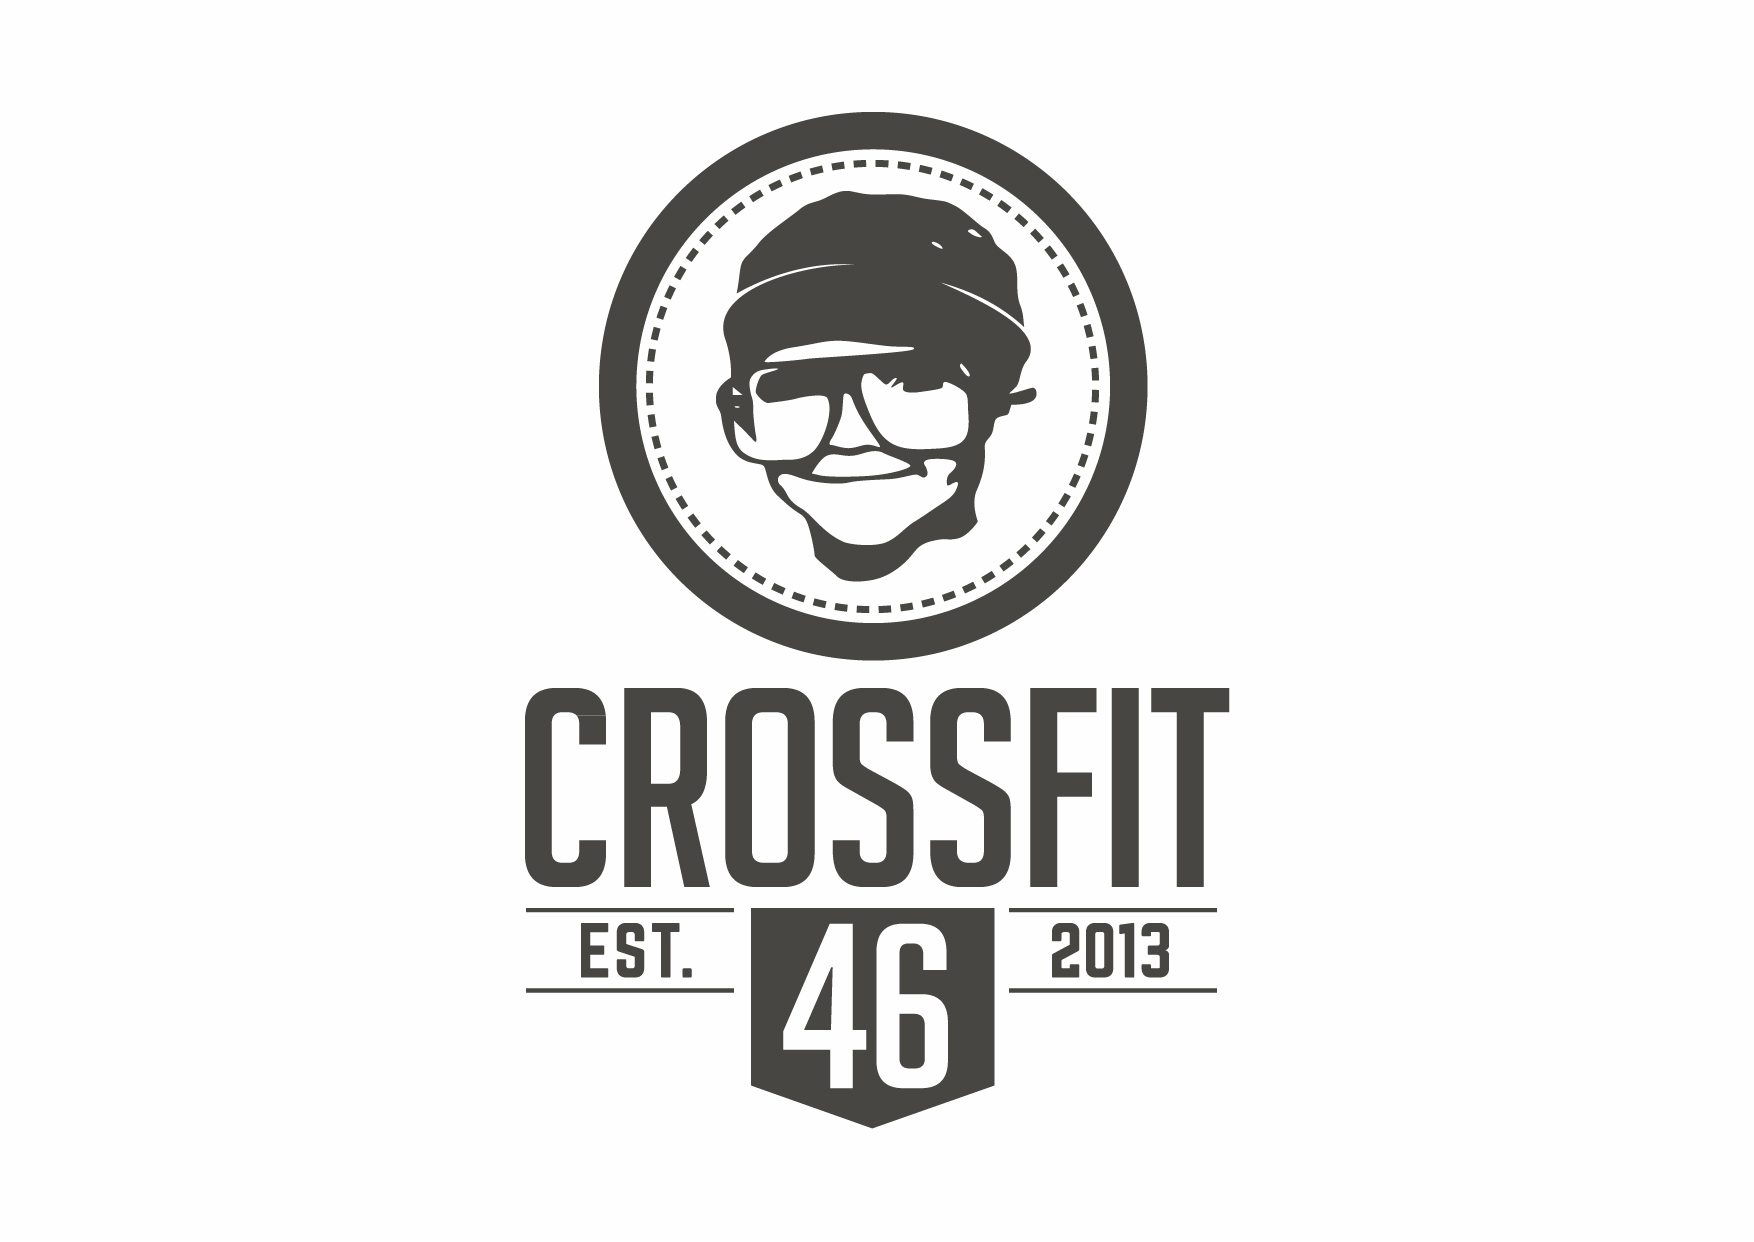 https://www.crossfit46.no